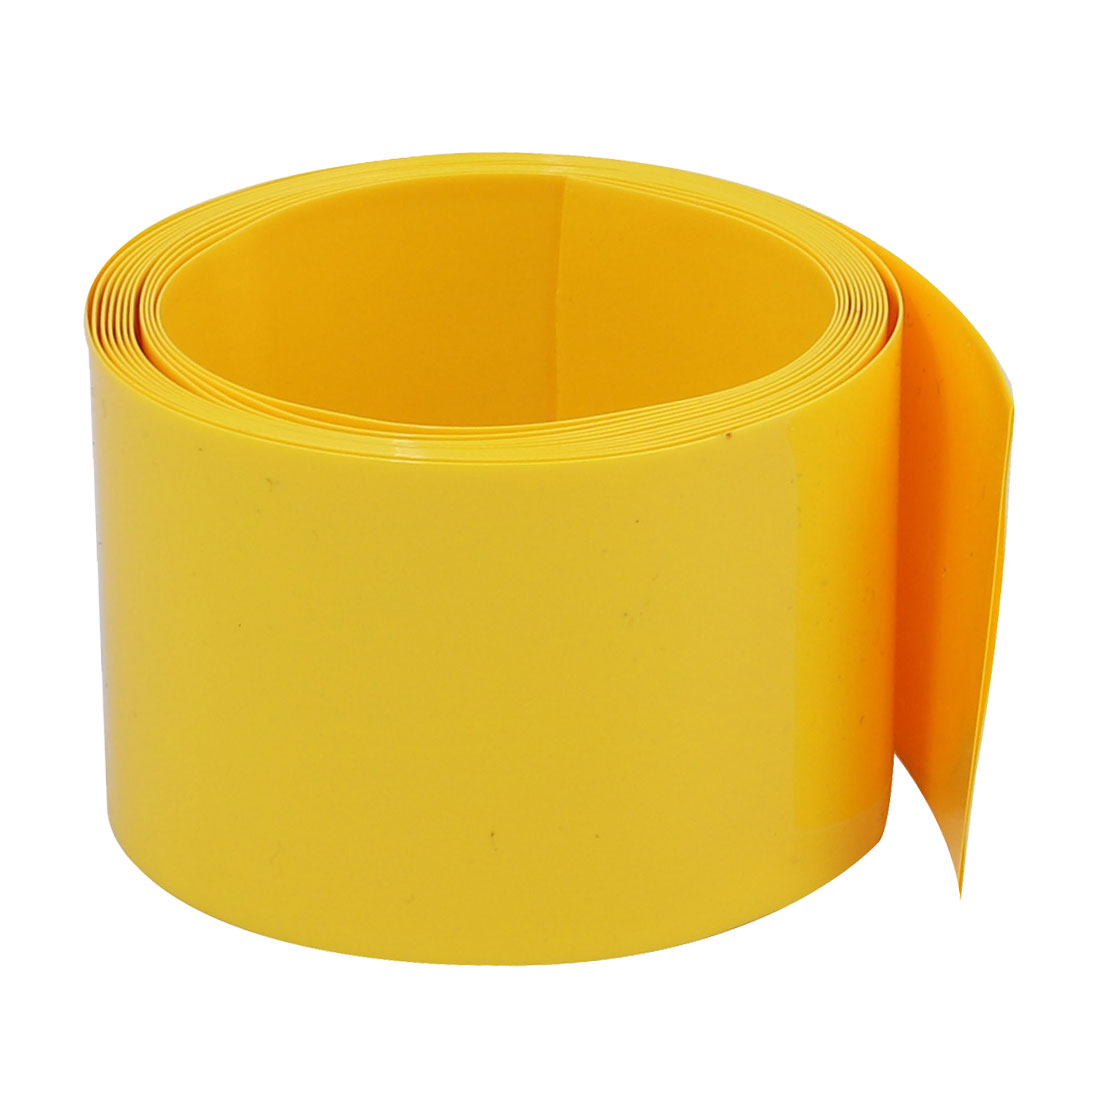 40mm Flat Width 2M Long PVC Heat Shrinkable Tube Yellow for 9V/AA Battery Pack